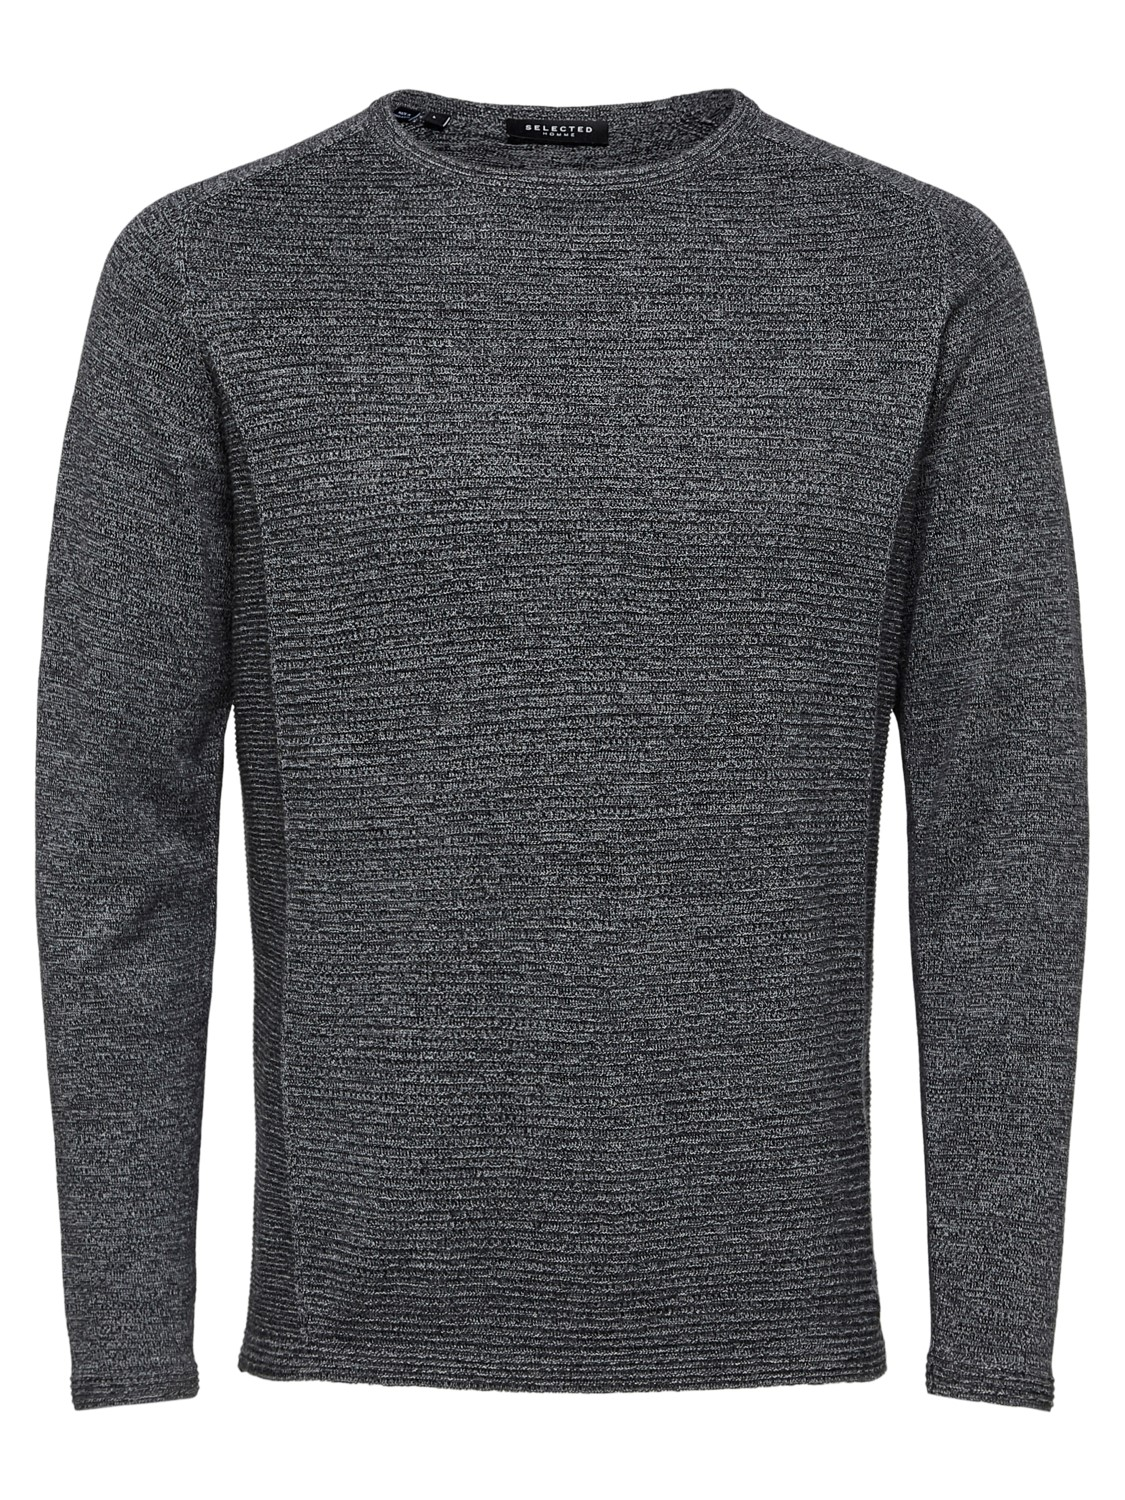 selected-herren-strickpullover-slhbakes-crew-neck-b